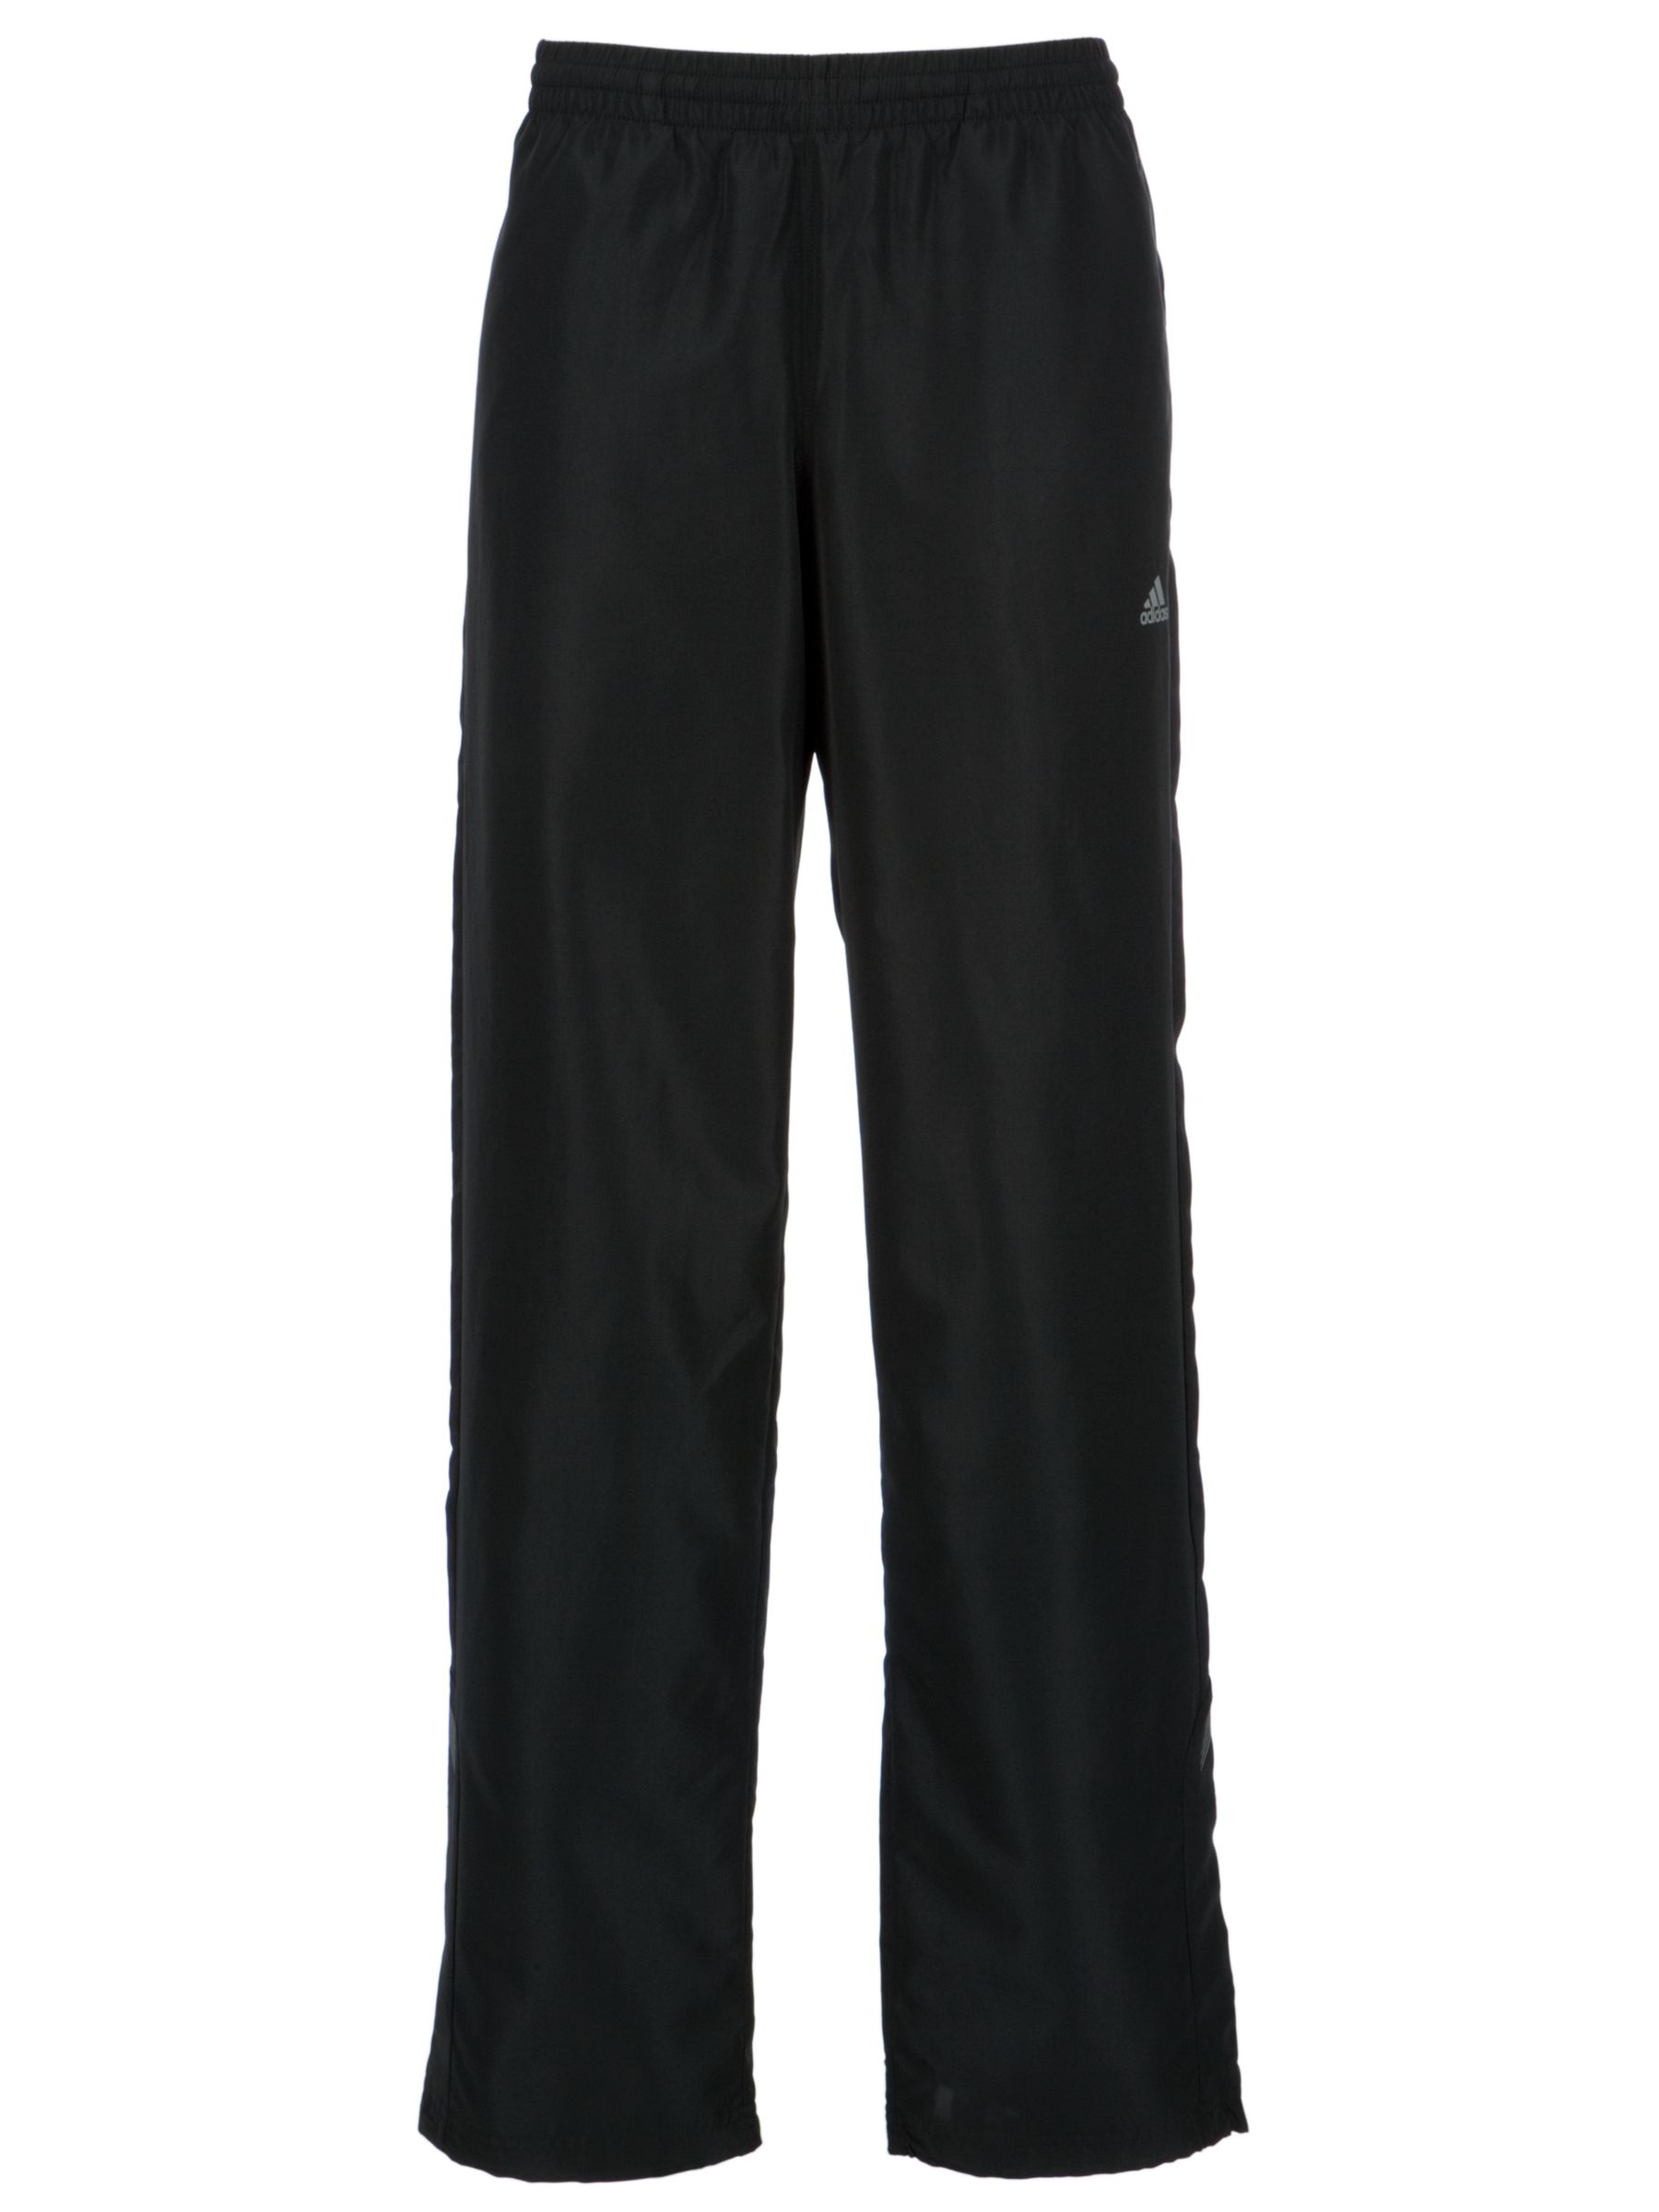 Adidas Essentials Woven Pants, Black